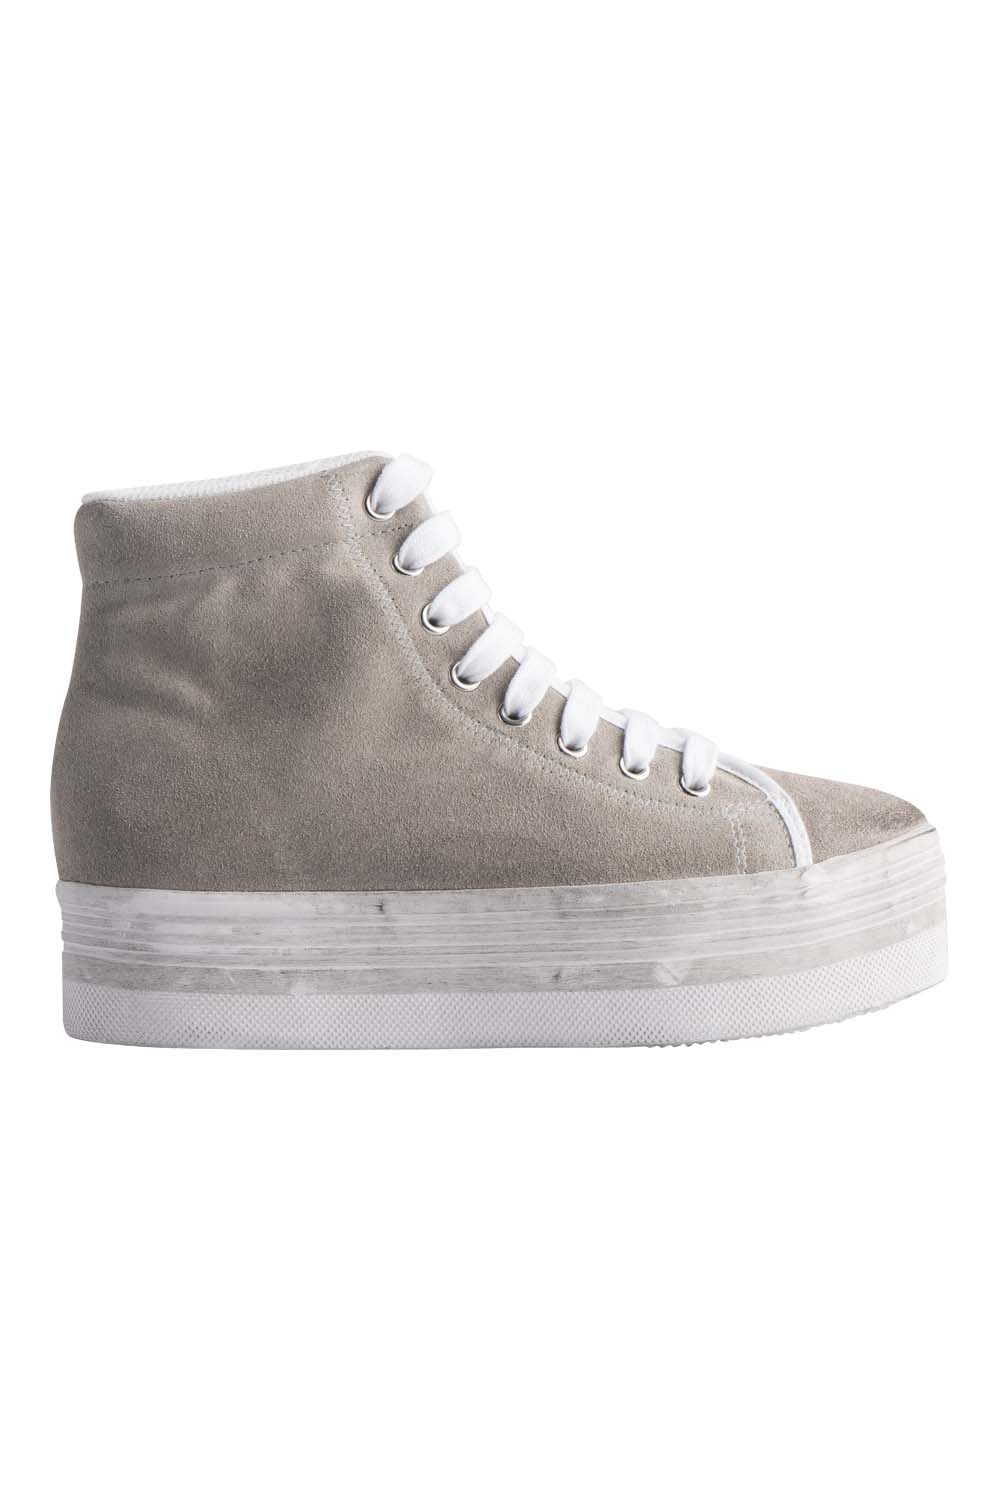 JEFFREY CAMPBELL SNEAKERS - HOMG GREY WASHED SUEDE.jpg